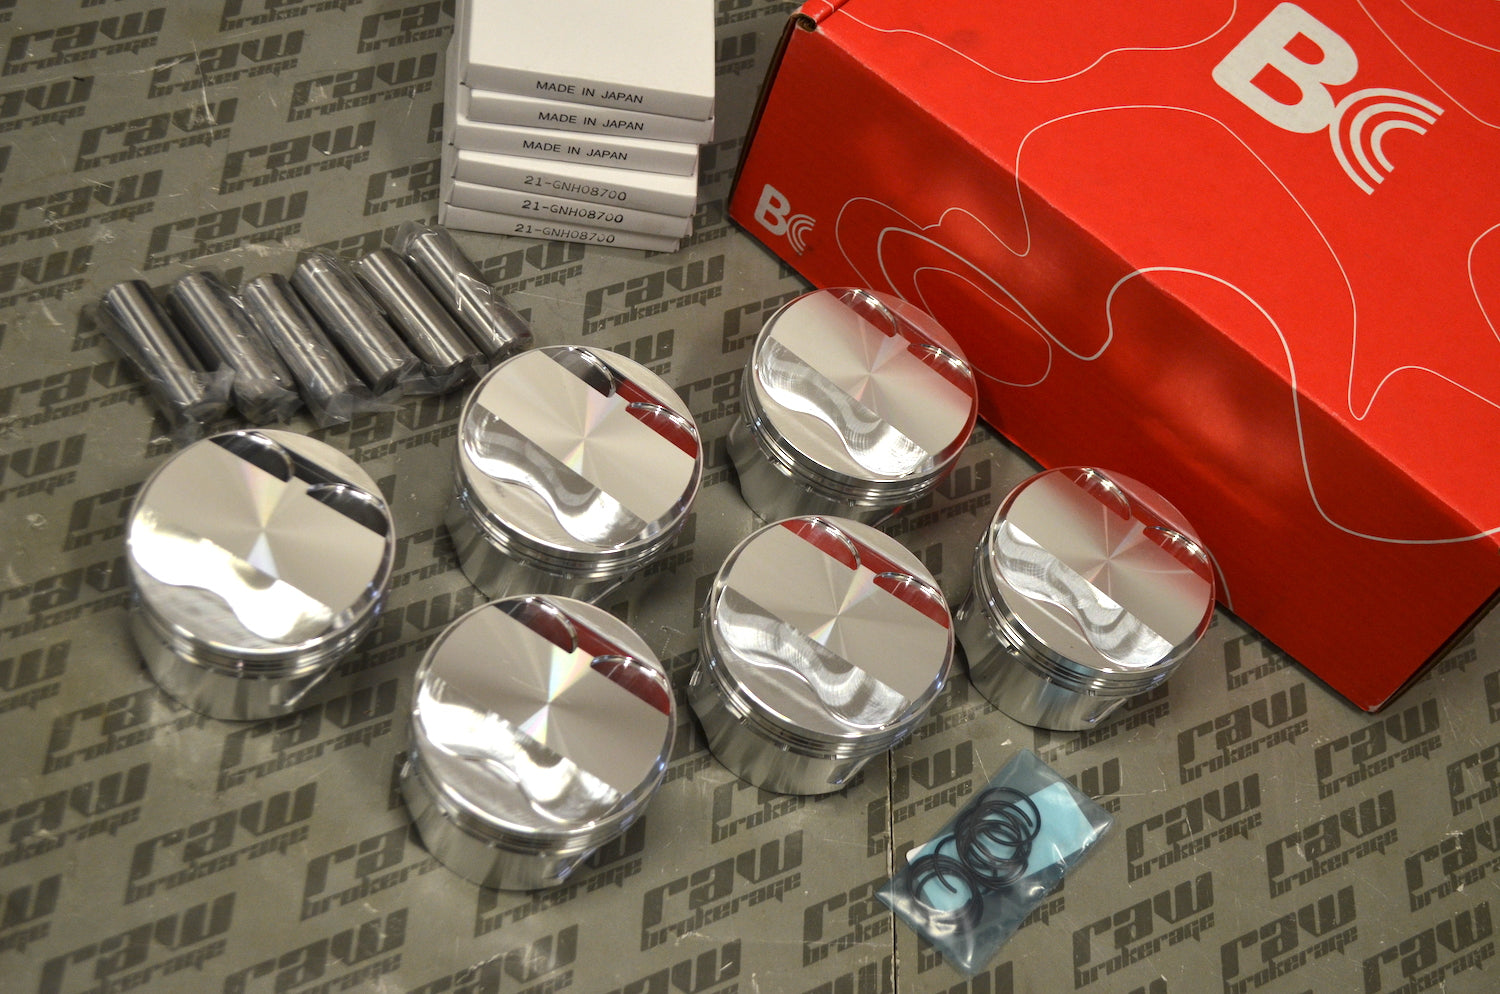 Brian Crower Pistons CP Custom w/5100 Alloy Pins, Rings and Locks for Nissan RB26/RB25 Stroker